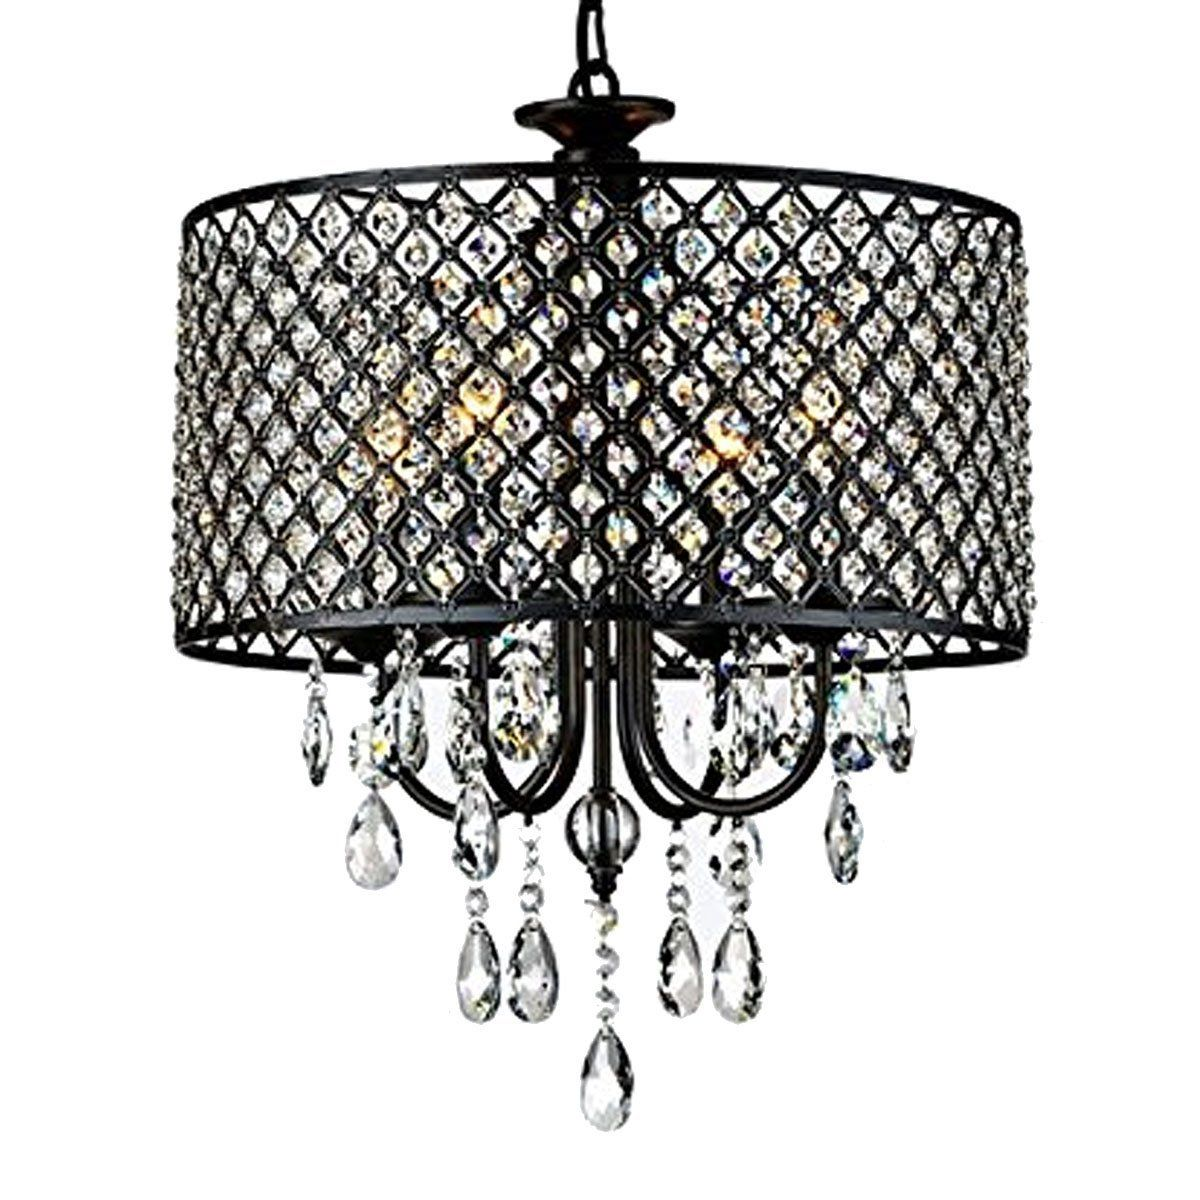 Homestia antique black 4 light round crystal chandelier homestia antique black 4 light round crystal chandelier chandeliers amazon canada aloadofball Choice Image